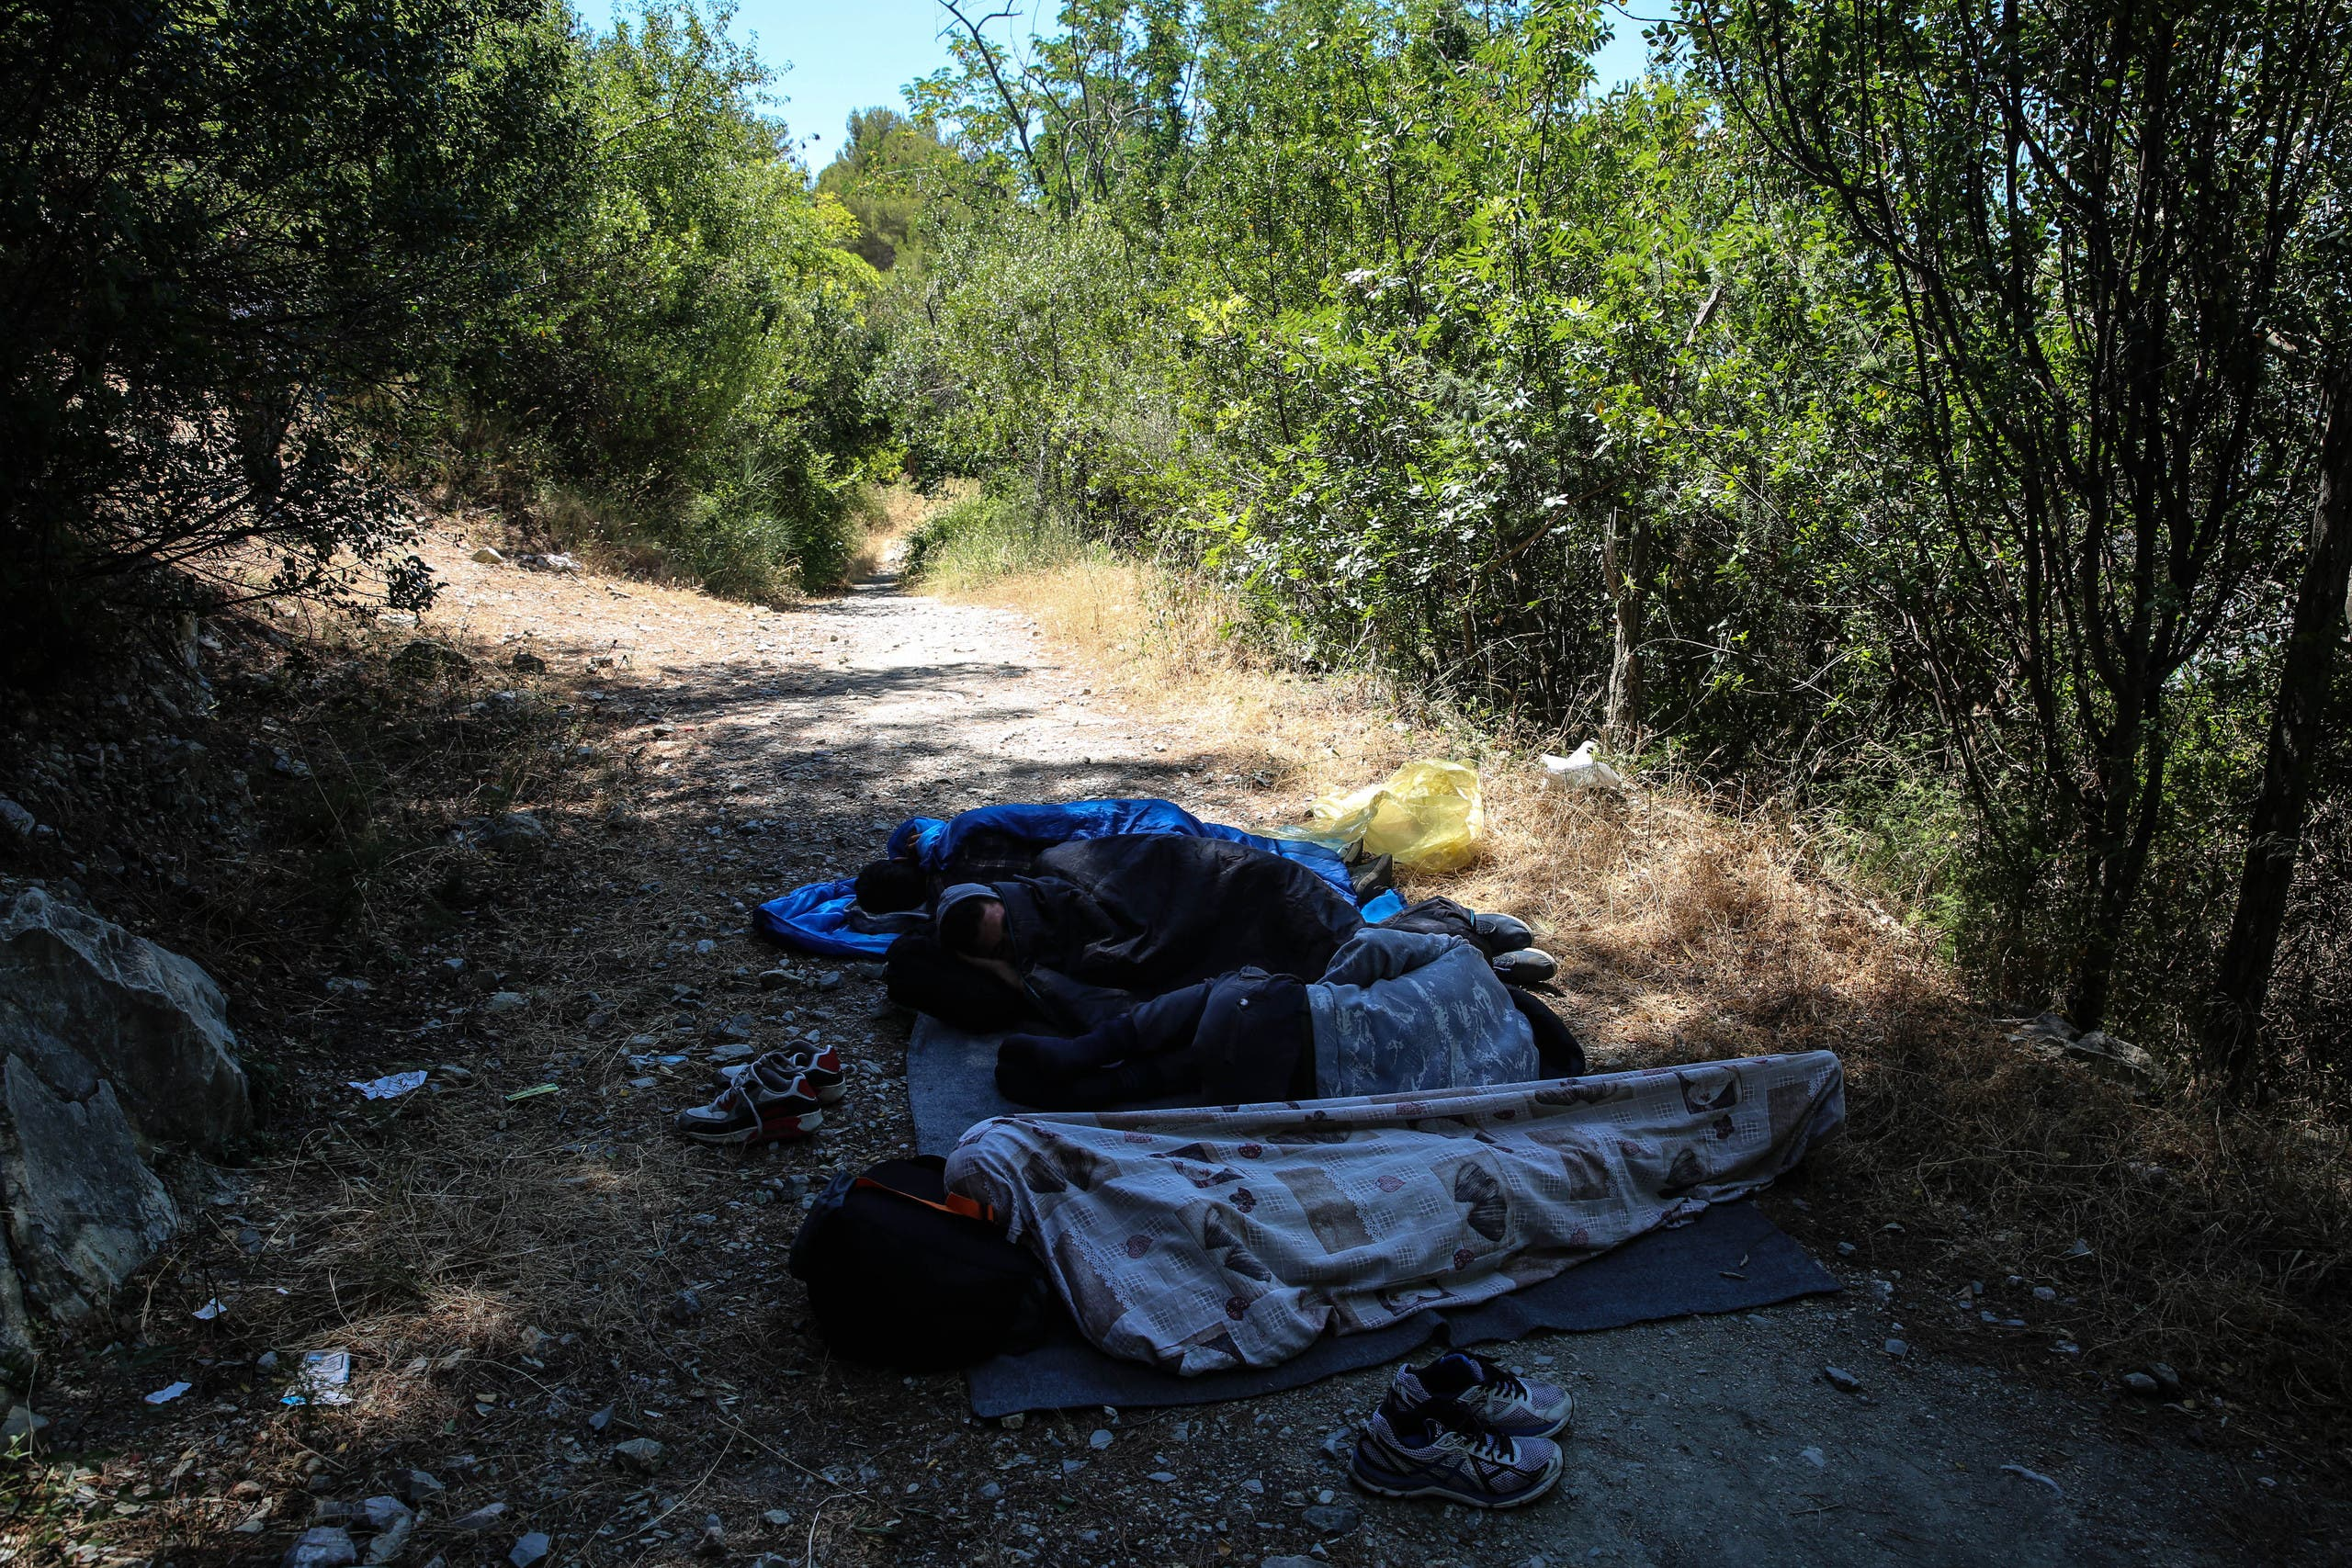 Most of the migrants must try several times before they succeed to get to France, as they are pushed back by French police. They sleep at the foot of the mountains, on the Italian side, waiting for nightfall before they try again. (Mohammad Ghannam,MSF)